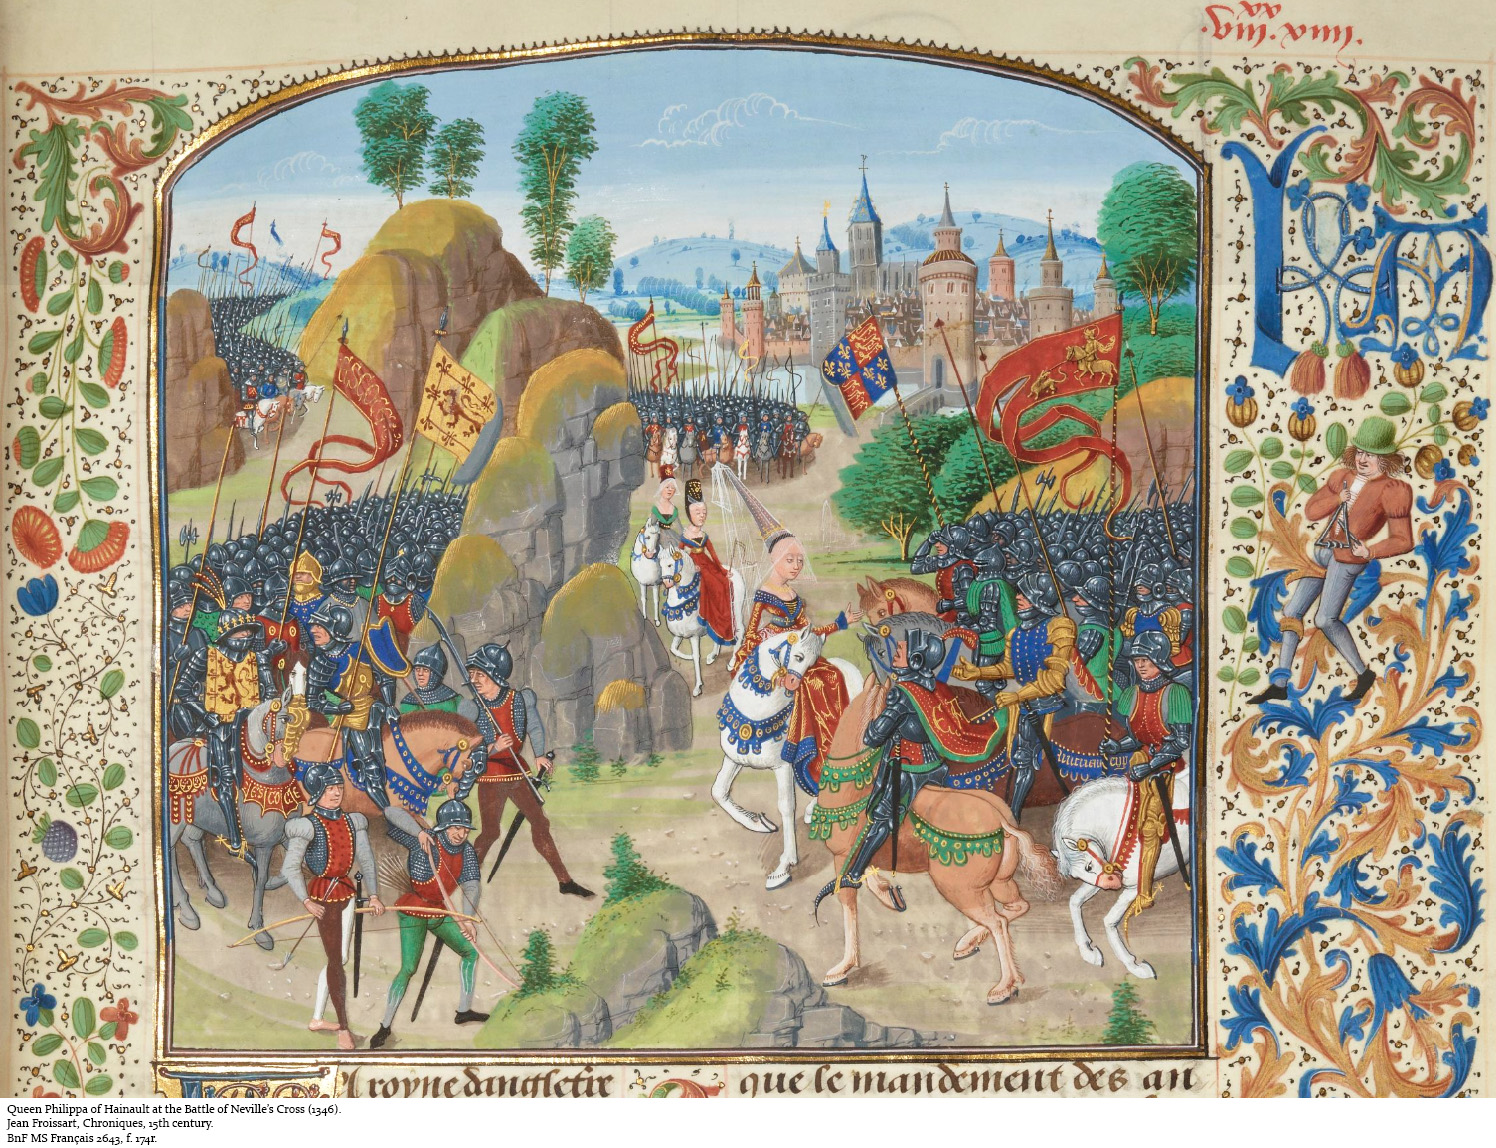 The Battle of Neville's Cross, 1346, from a 15th-century French Manuscript